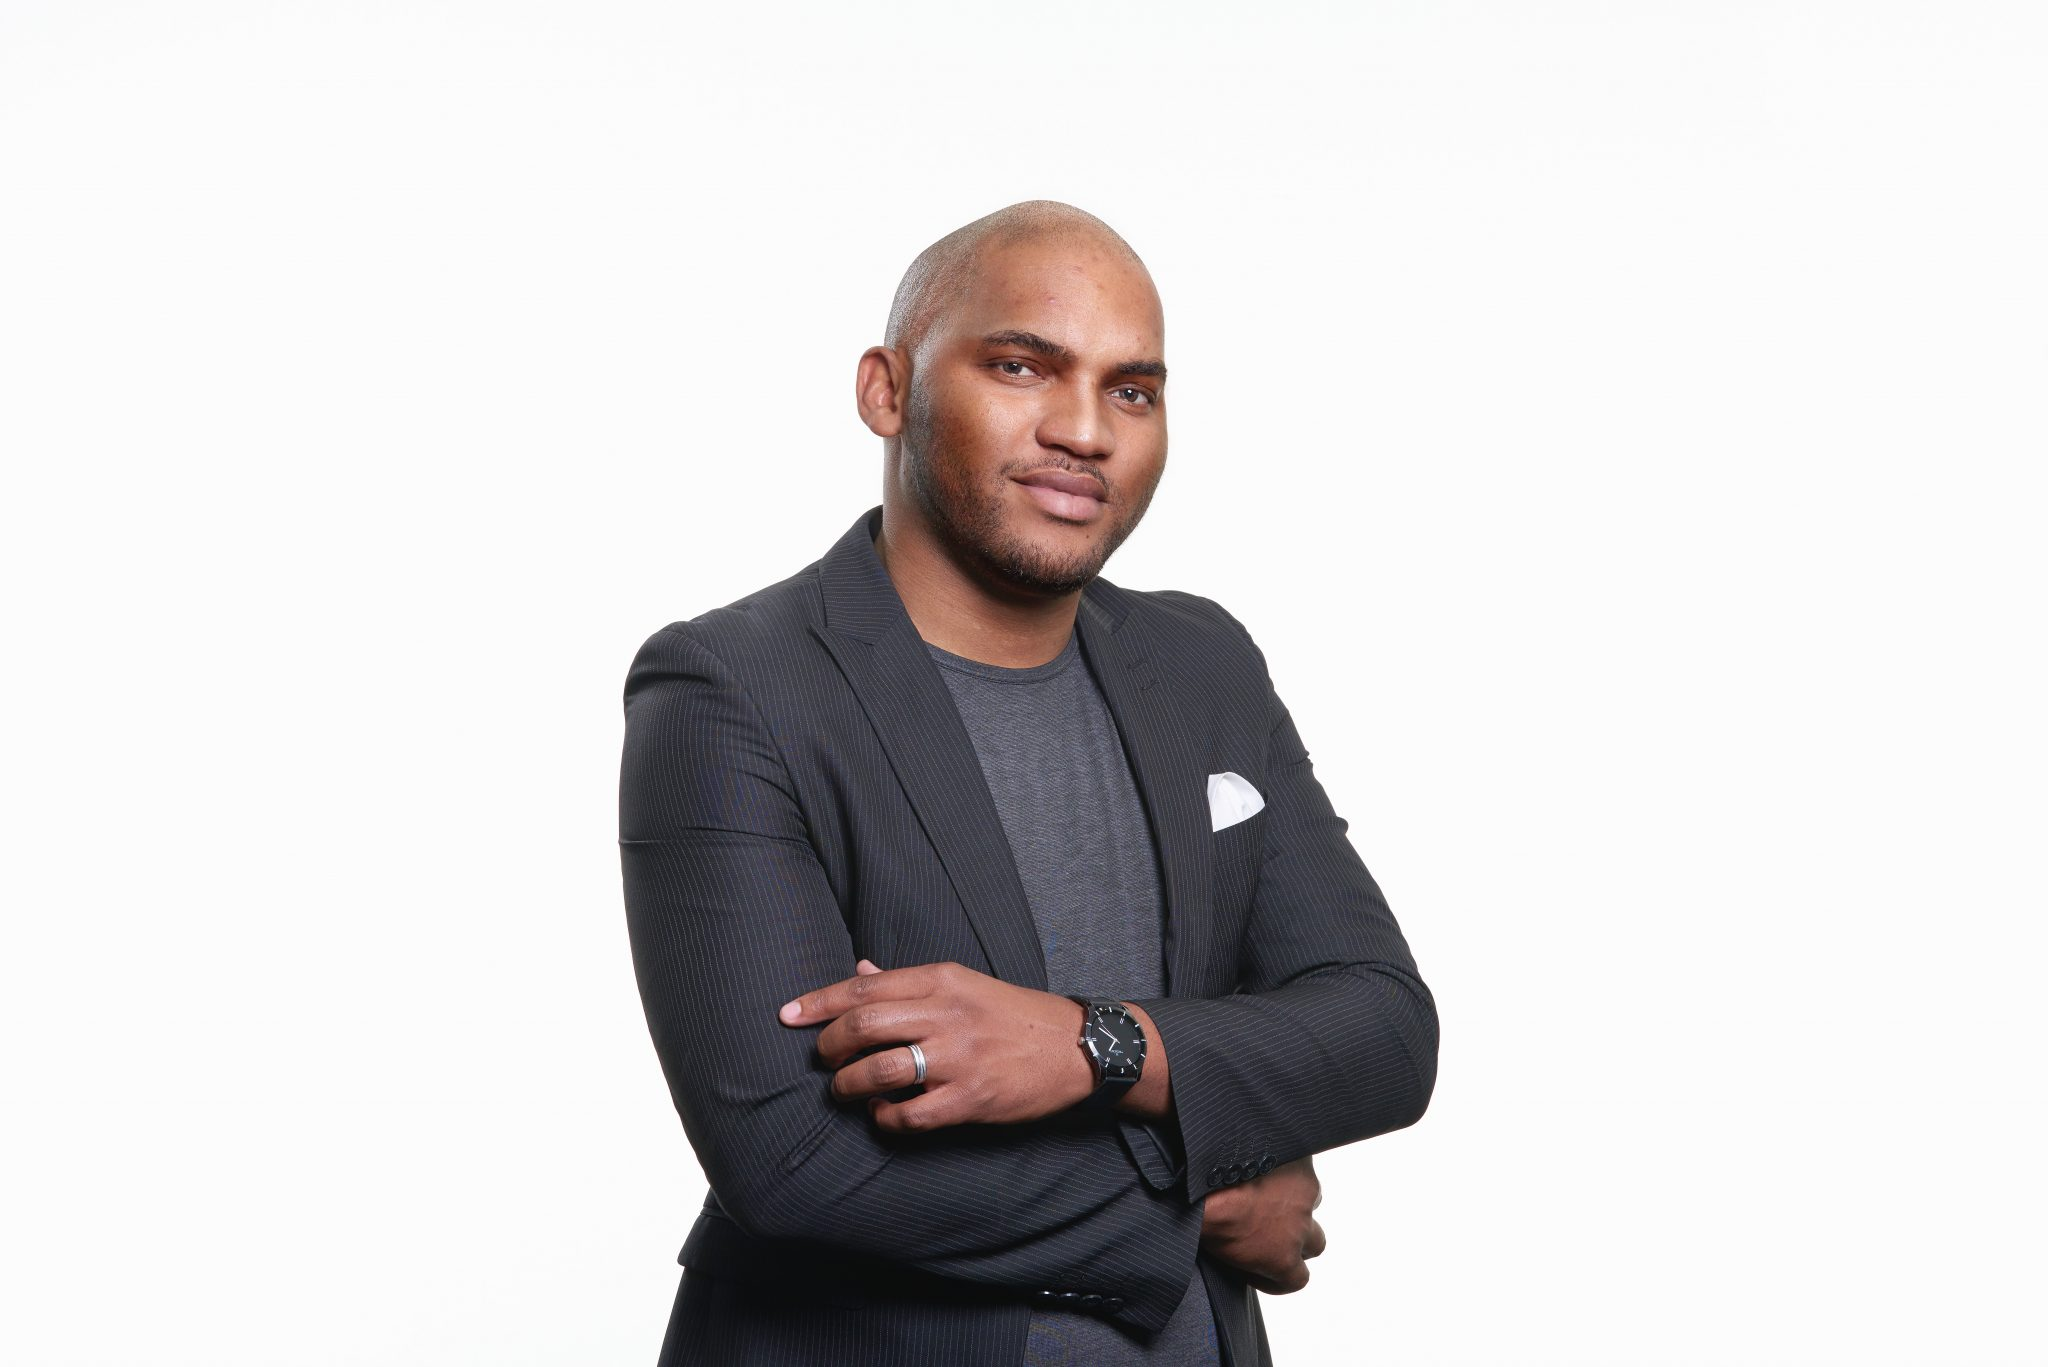 Bonga Sibisi appointed Account Manager for Mall Ads